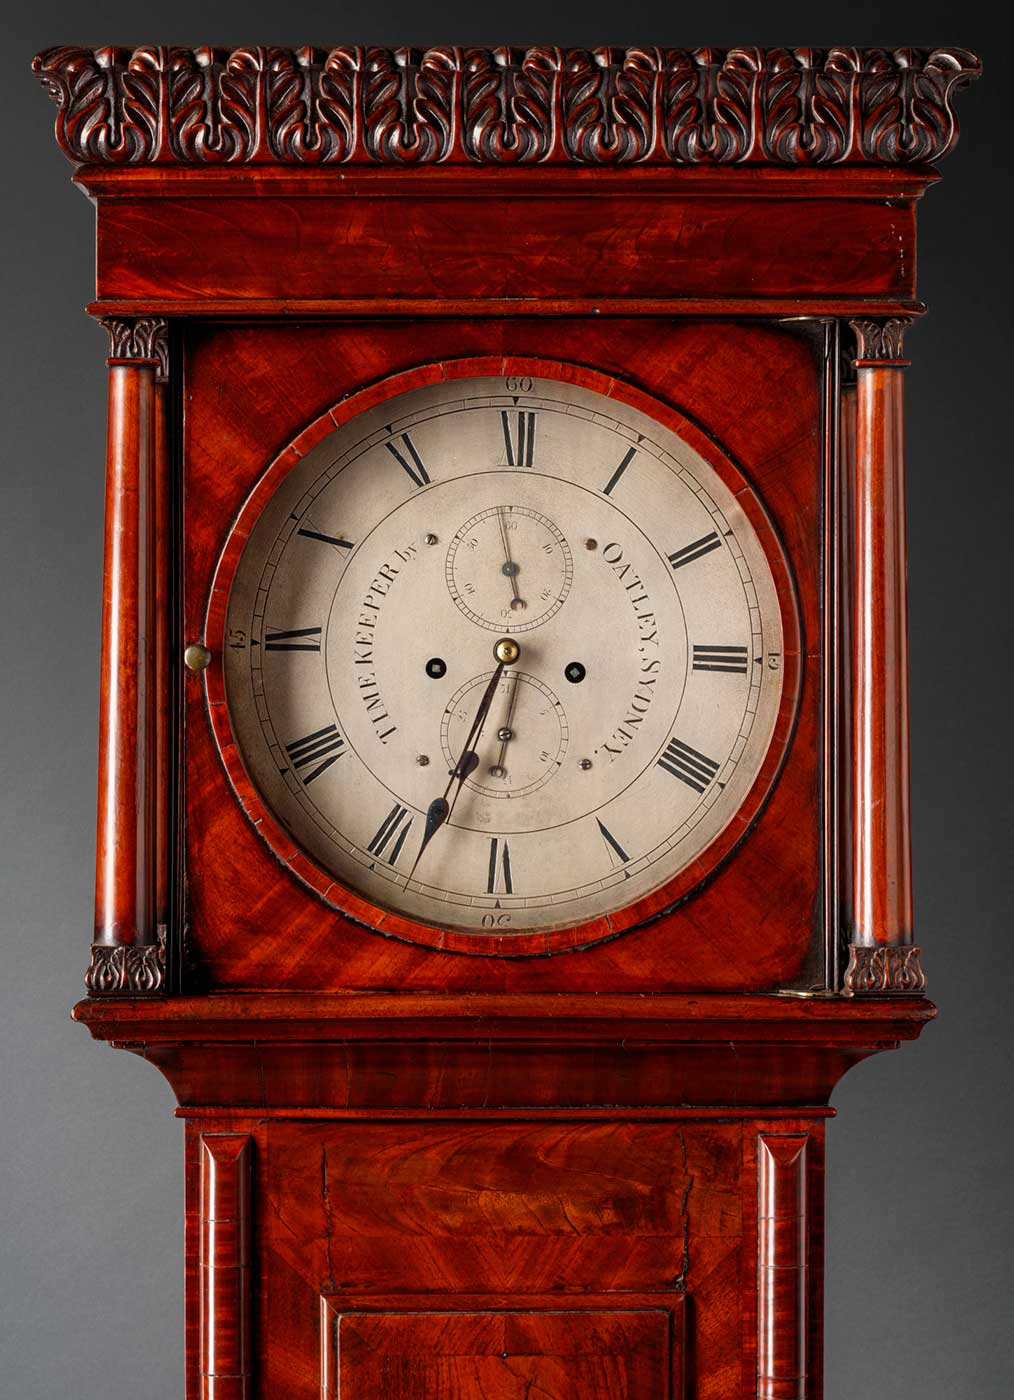 """Detail of a clock face with """"Timekeeper by Oatley Sydney"""" on dial. - click to view larger image"""